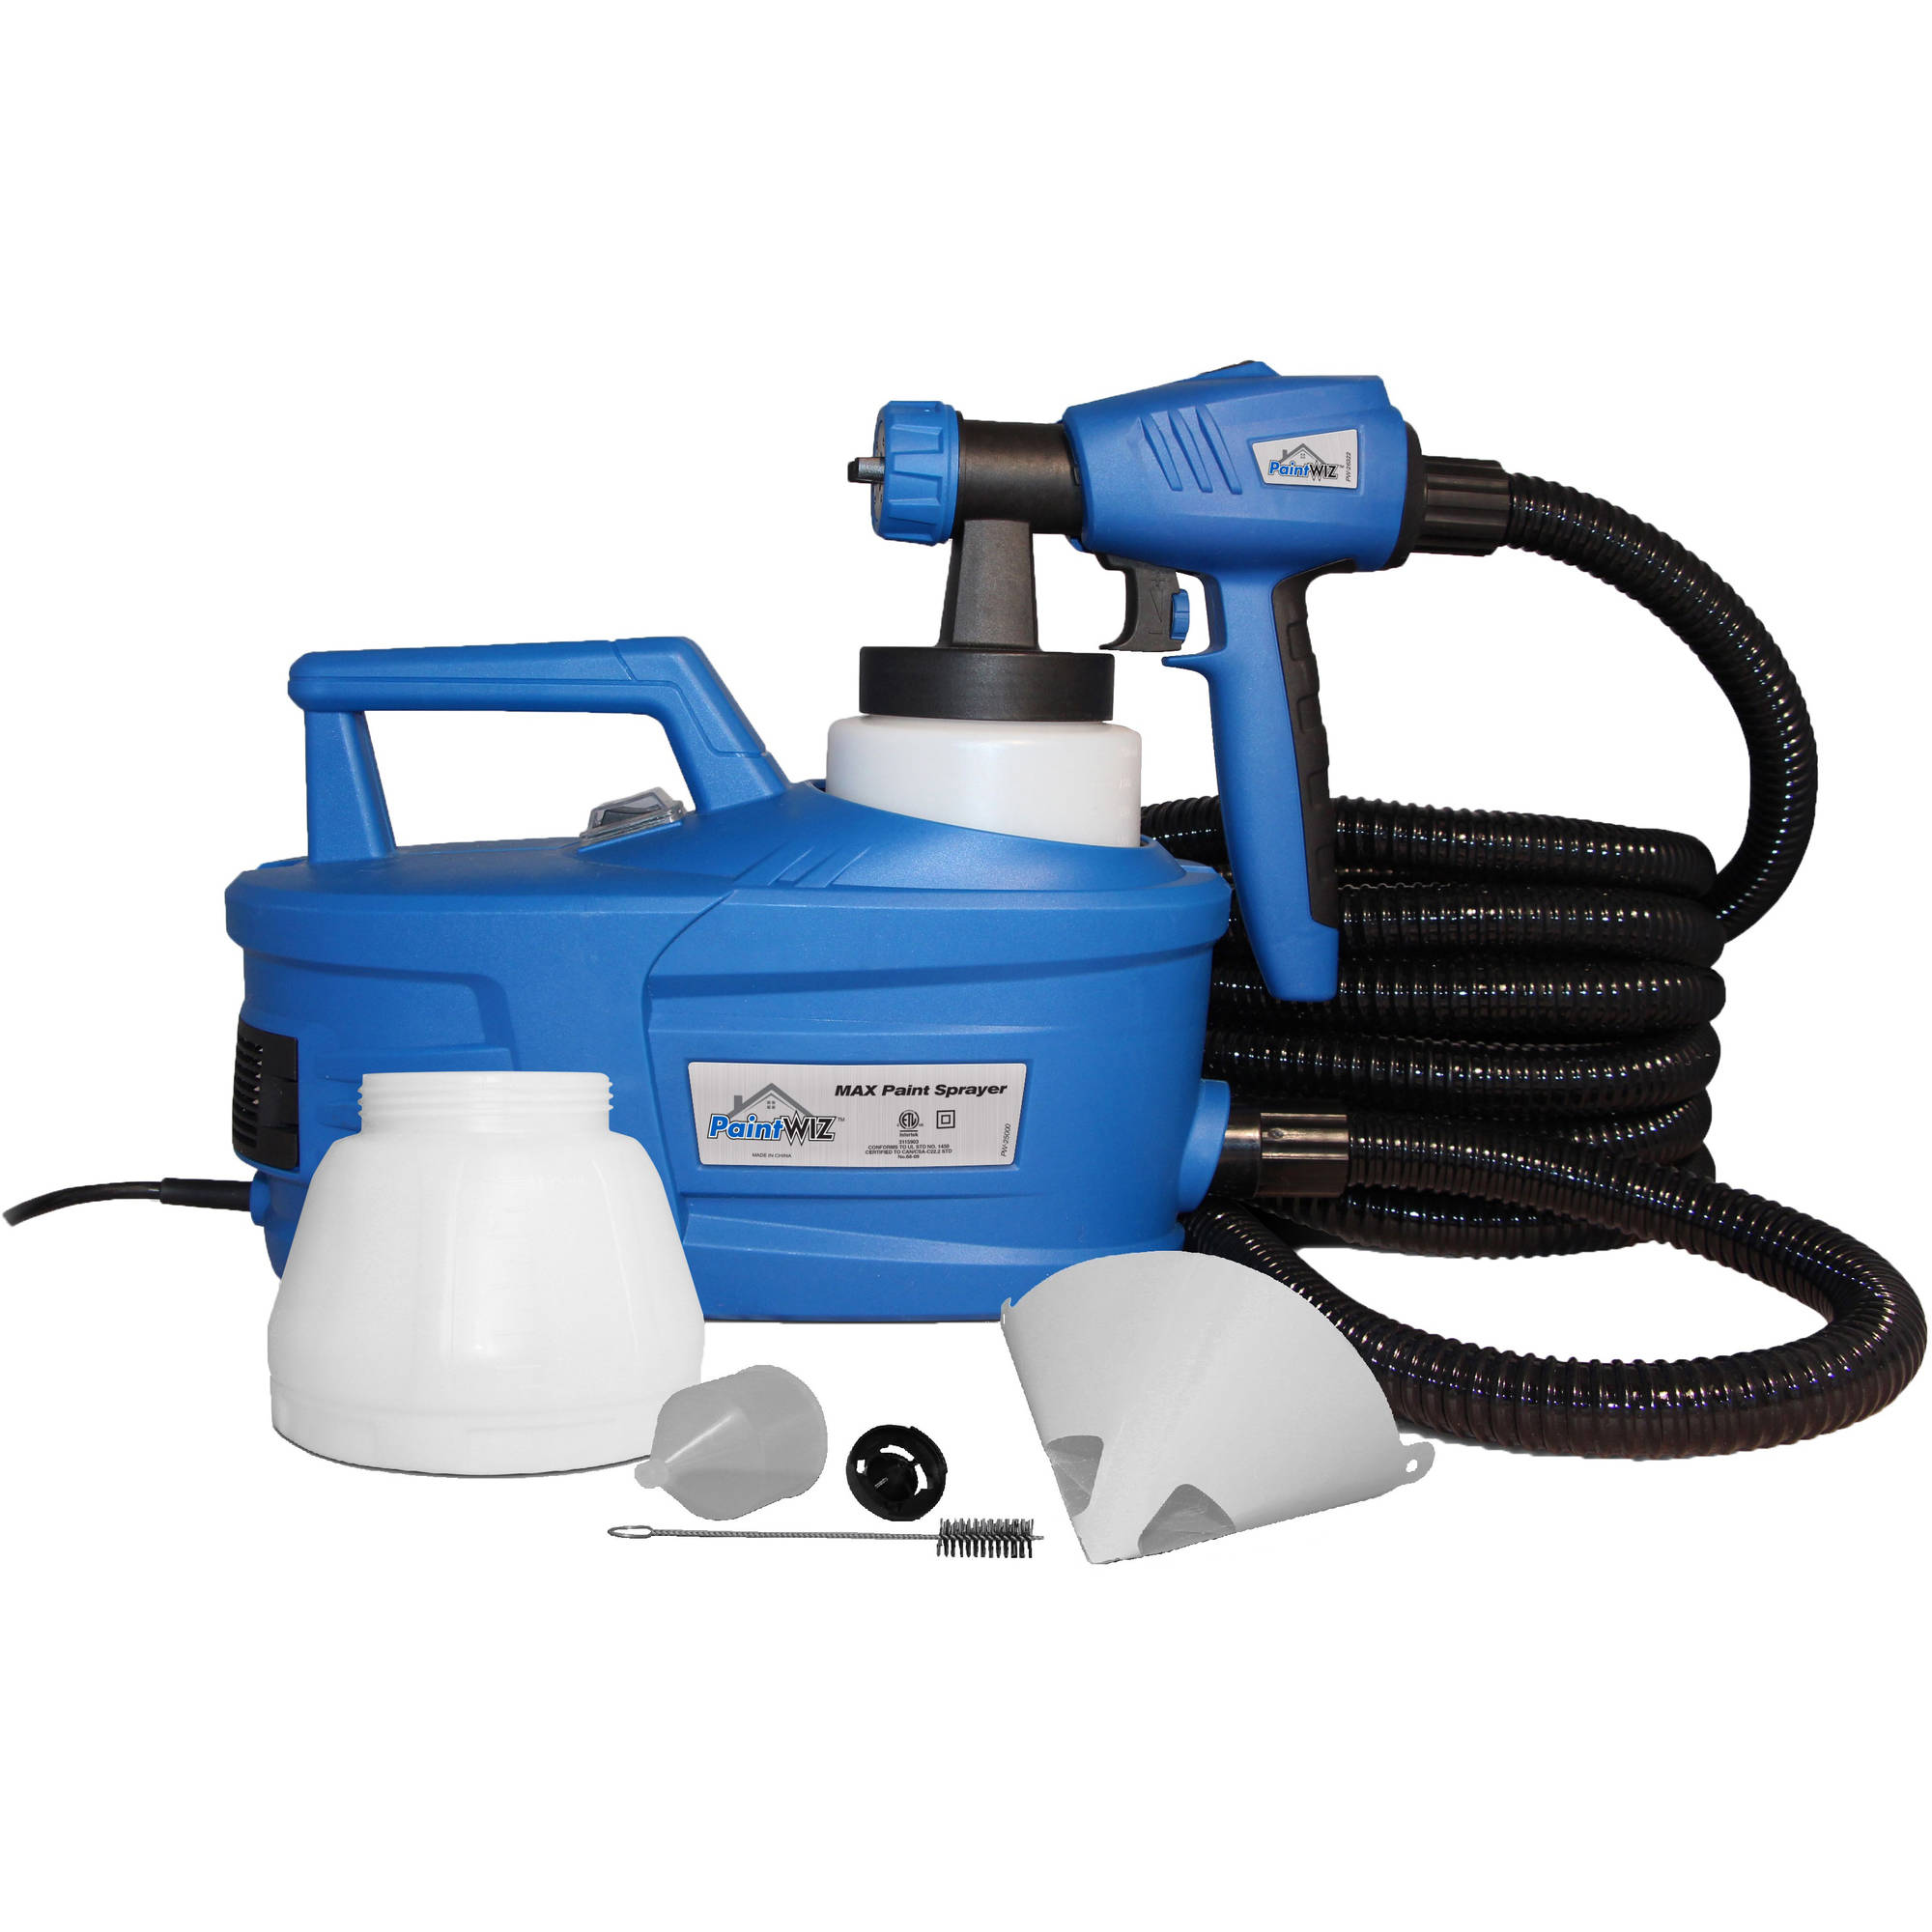 PaintWIZ MAX Paint Sprayer, PW25000 HVLP Spray Gun Spray System